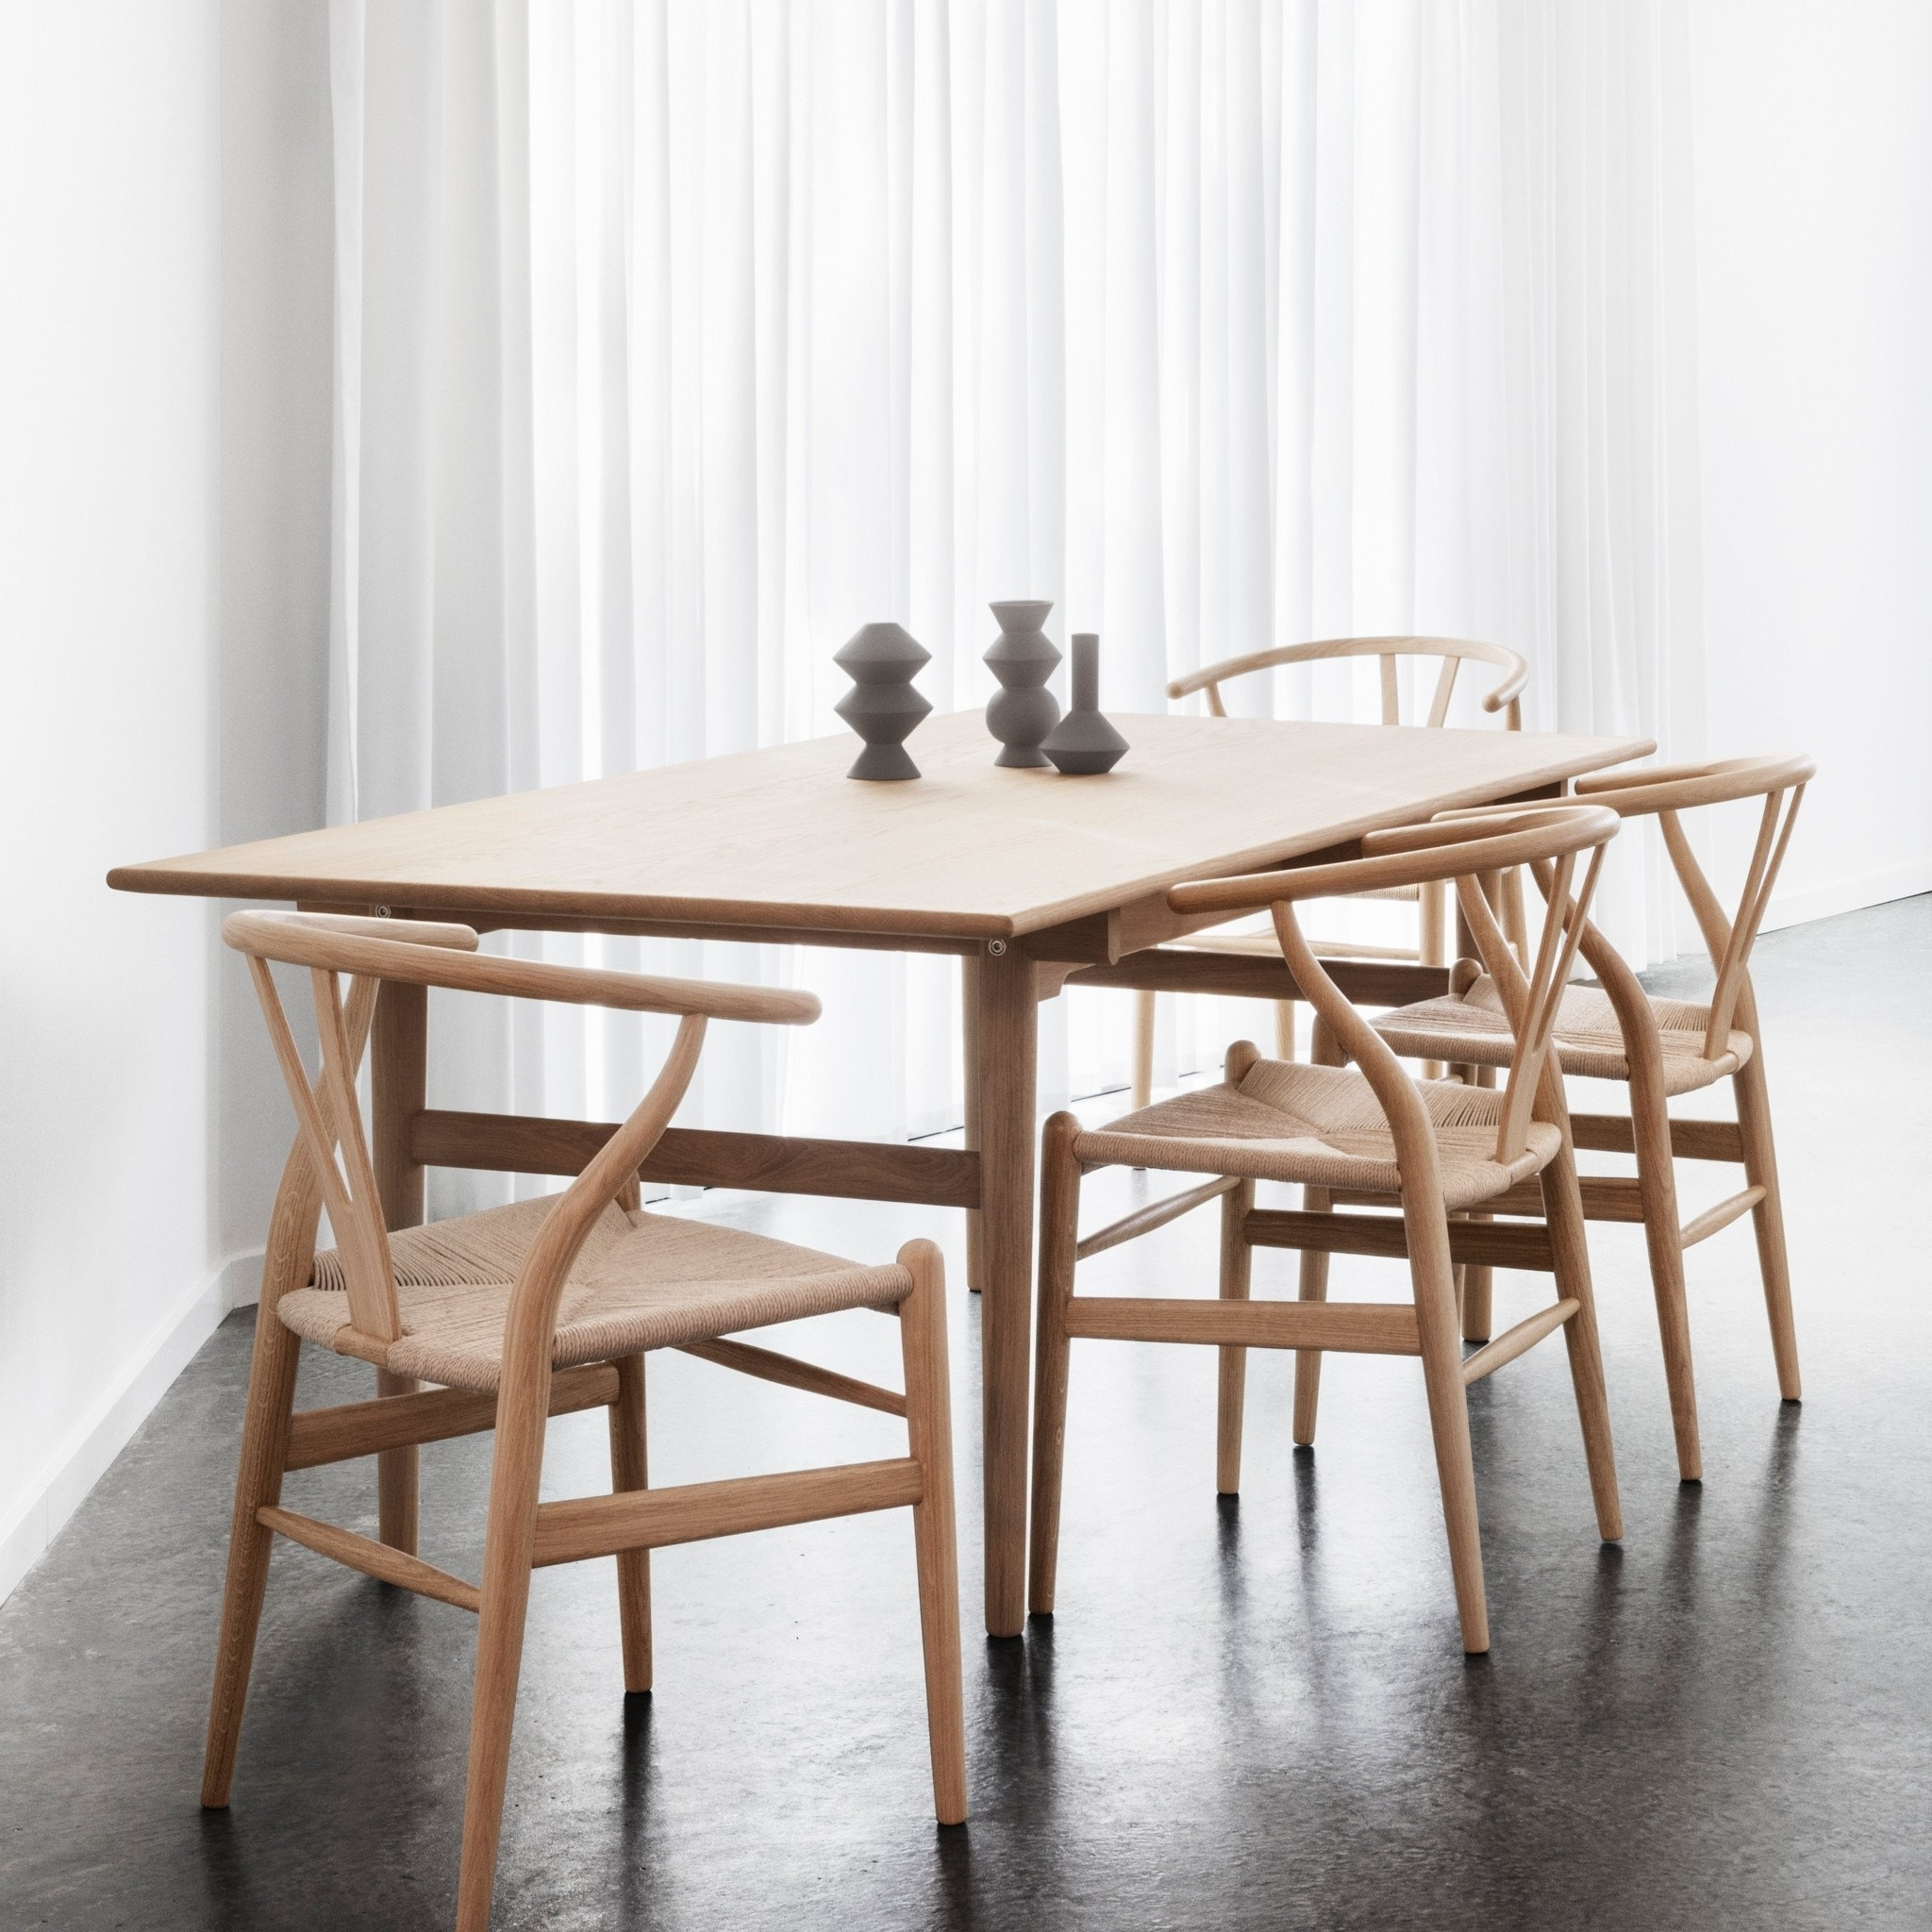 Widely Used Ch327 Dining Tablecarl Hansen & Søn — Haus® For Dining Tables London (View 11 of 25)